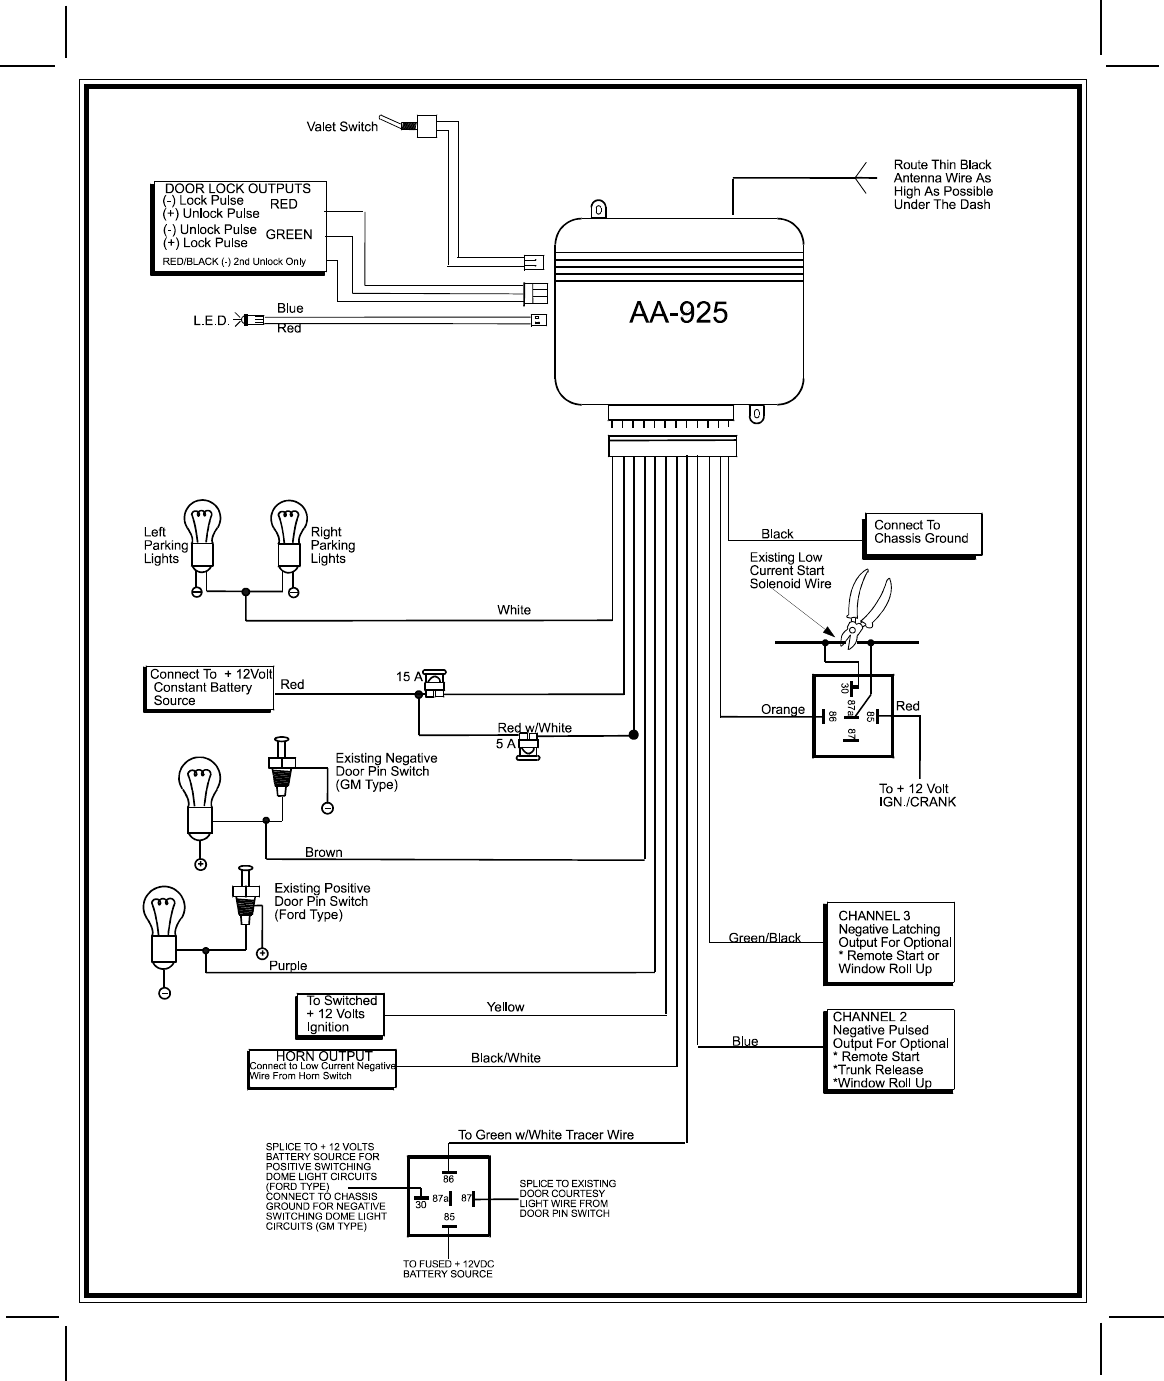 prestige alarm remote start wiring diagram get free image about wiring diagram